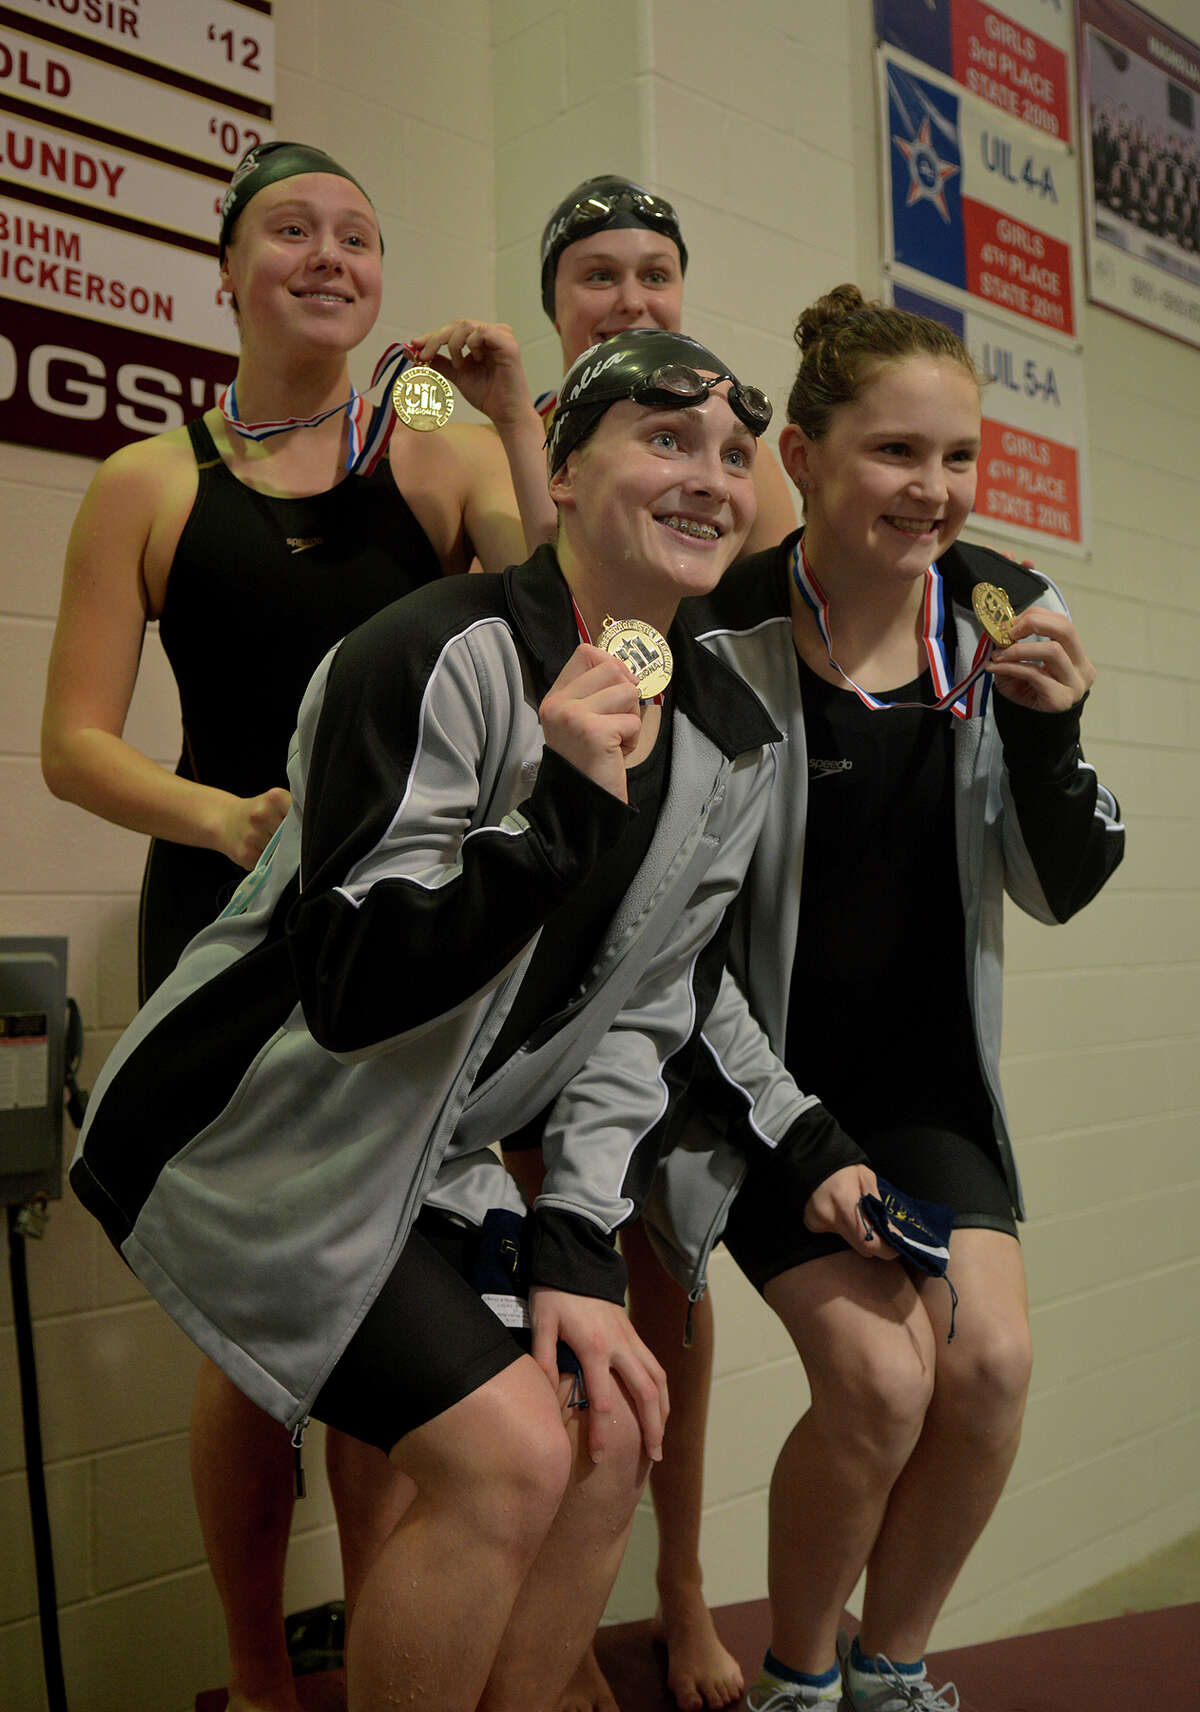 The Magnolia High School Girls Medley Relay, including senior Caitlin Clements, clockwise from bottom left, senior Dove Niccum, sophomore Savannah Schwienteck, and freshman Olivia Gonder, show off their gold medals after winning their event at the 2017 Region 6-5A Swimming & Diving Championships at the Michael D. Holland Aquatic Center in Magnolia on Saturday, Feb. 4, 2017. (Photo by Jerry Baker)